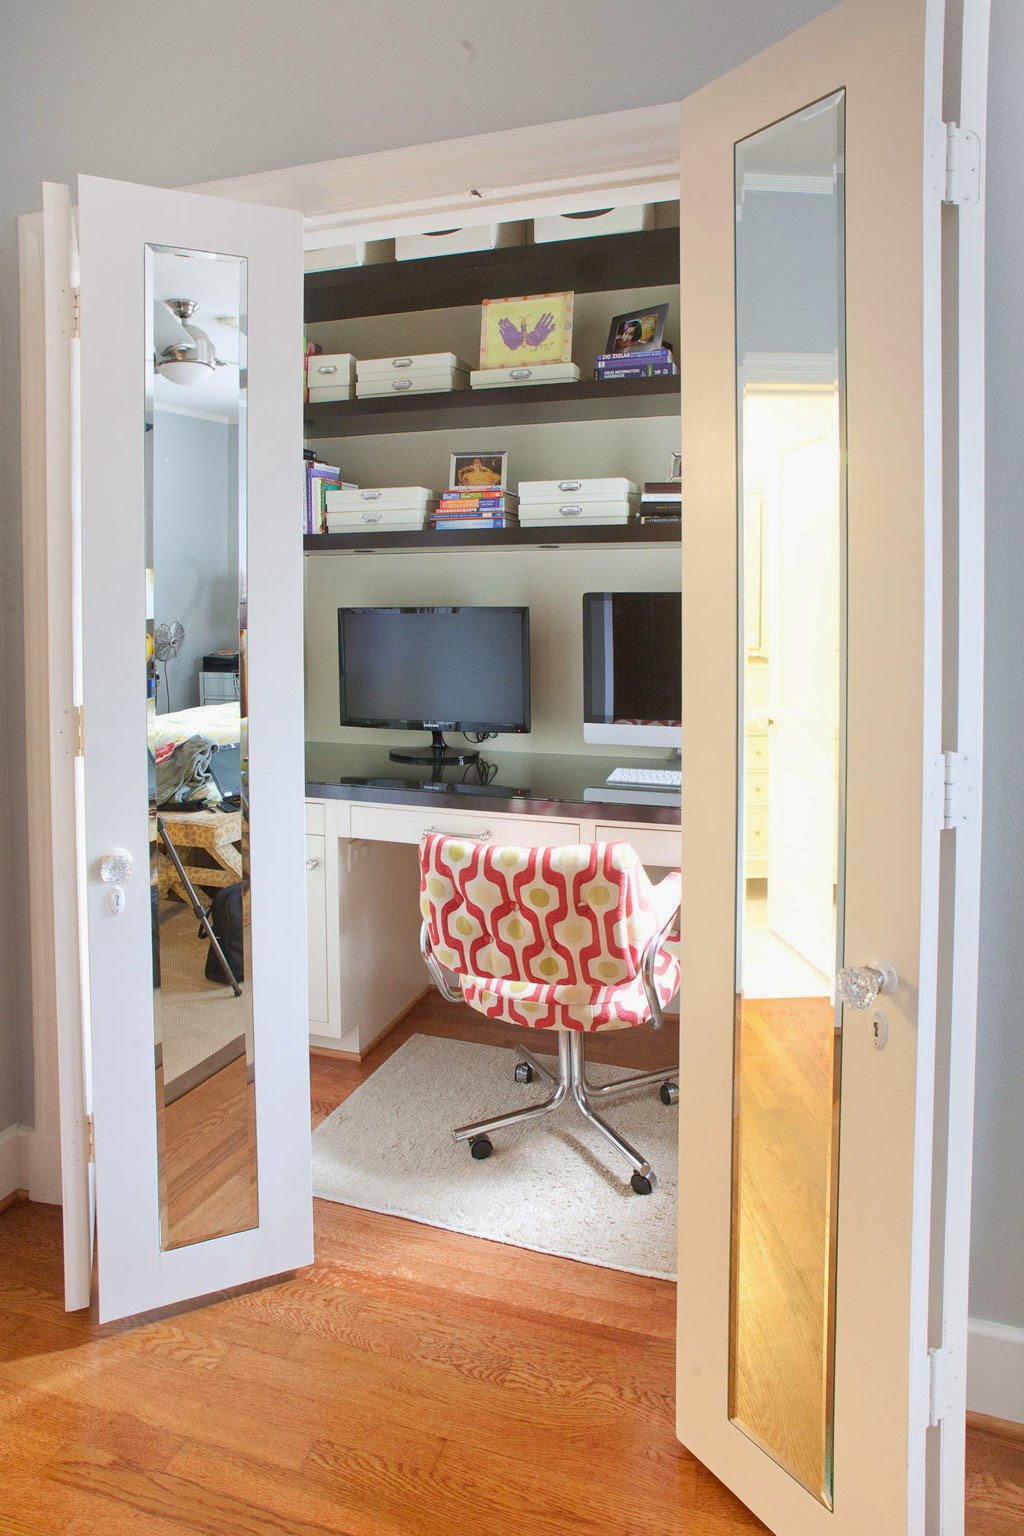 mirrored bifold hanging closet doors idea